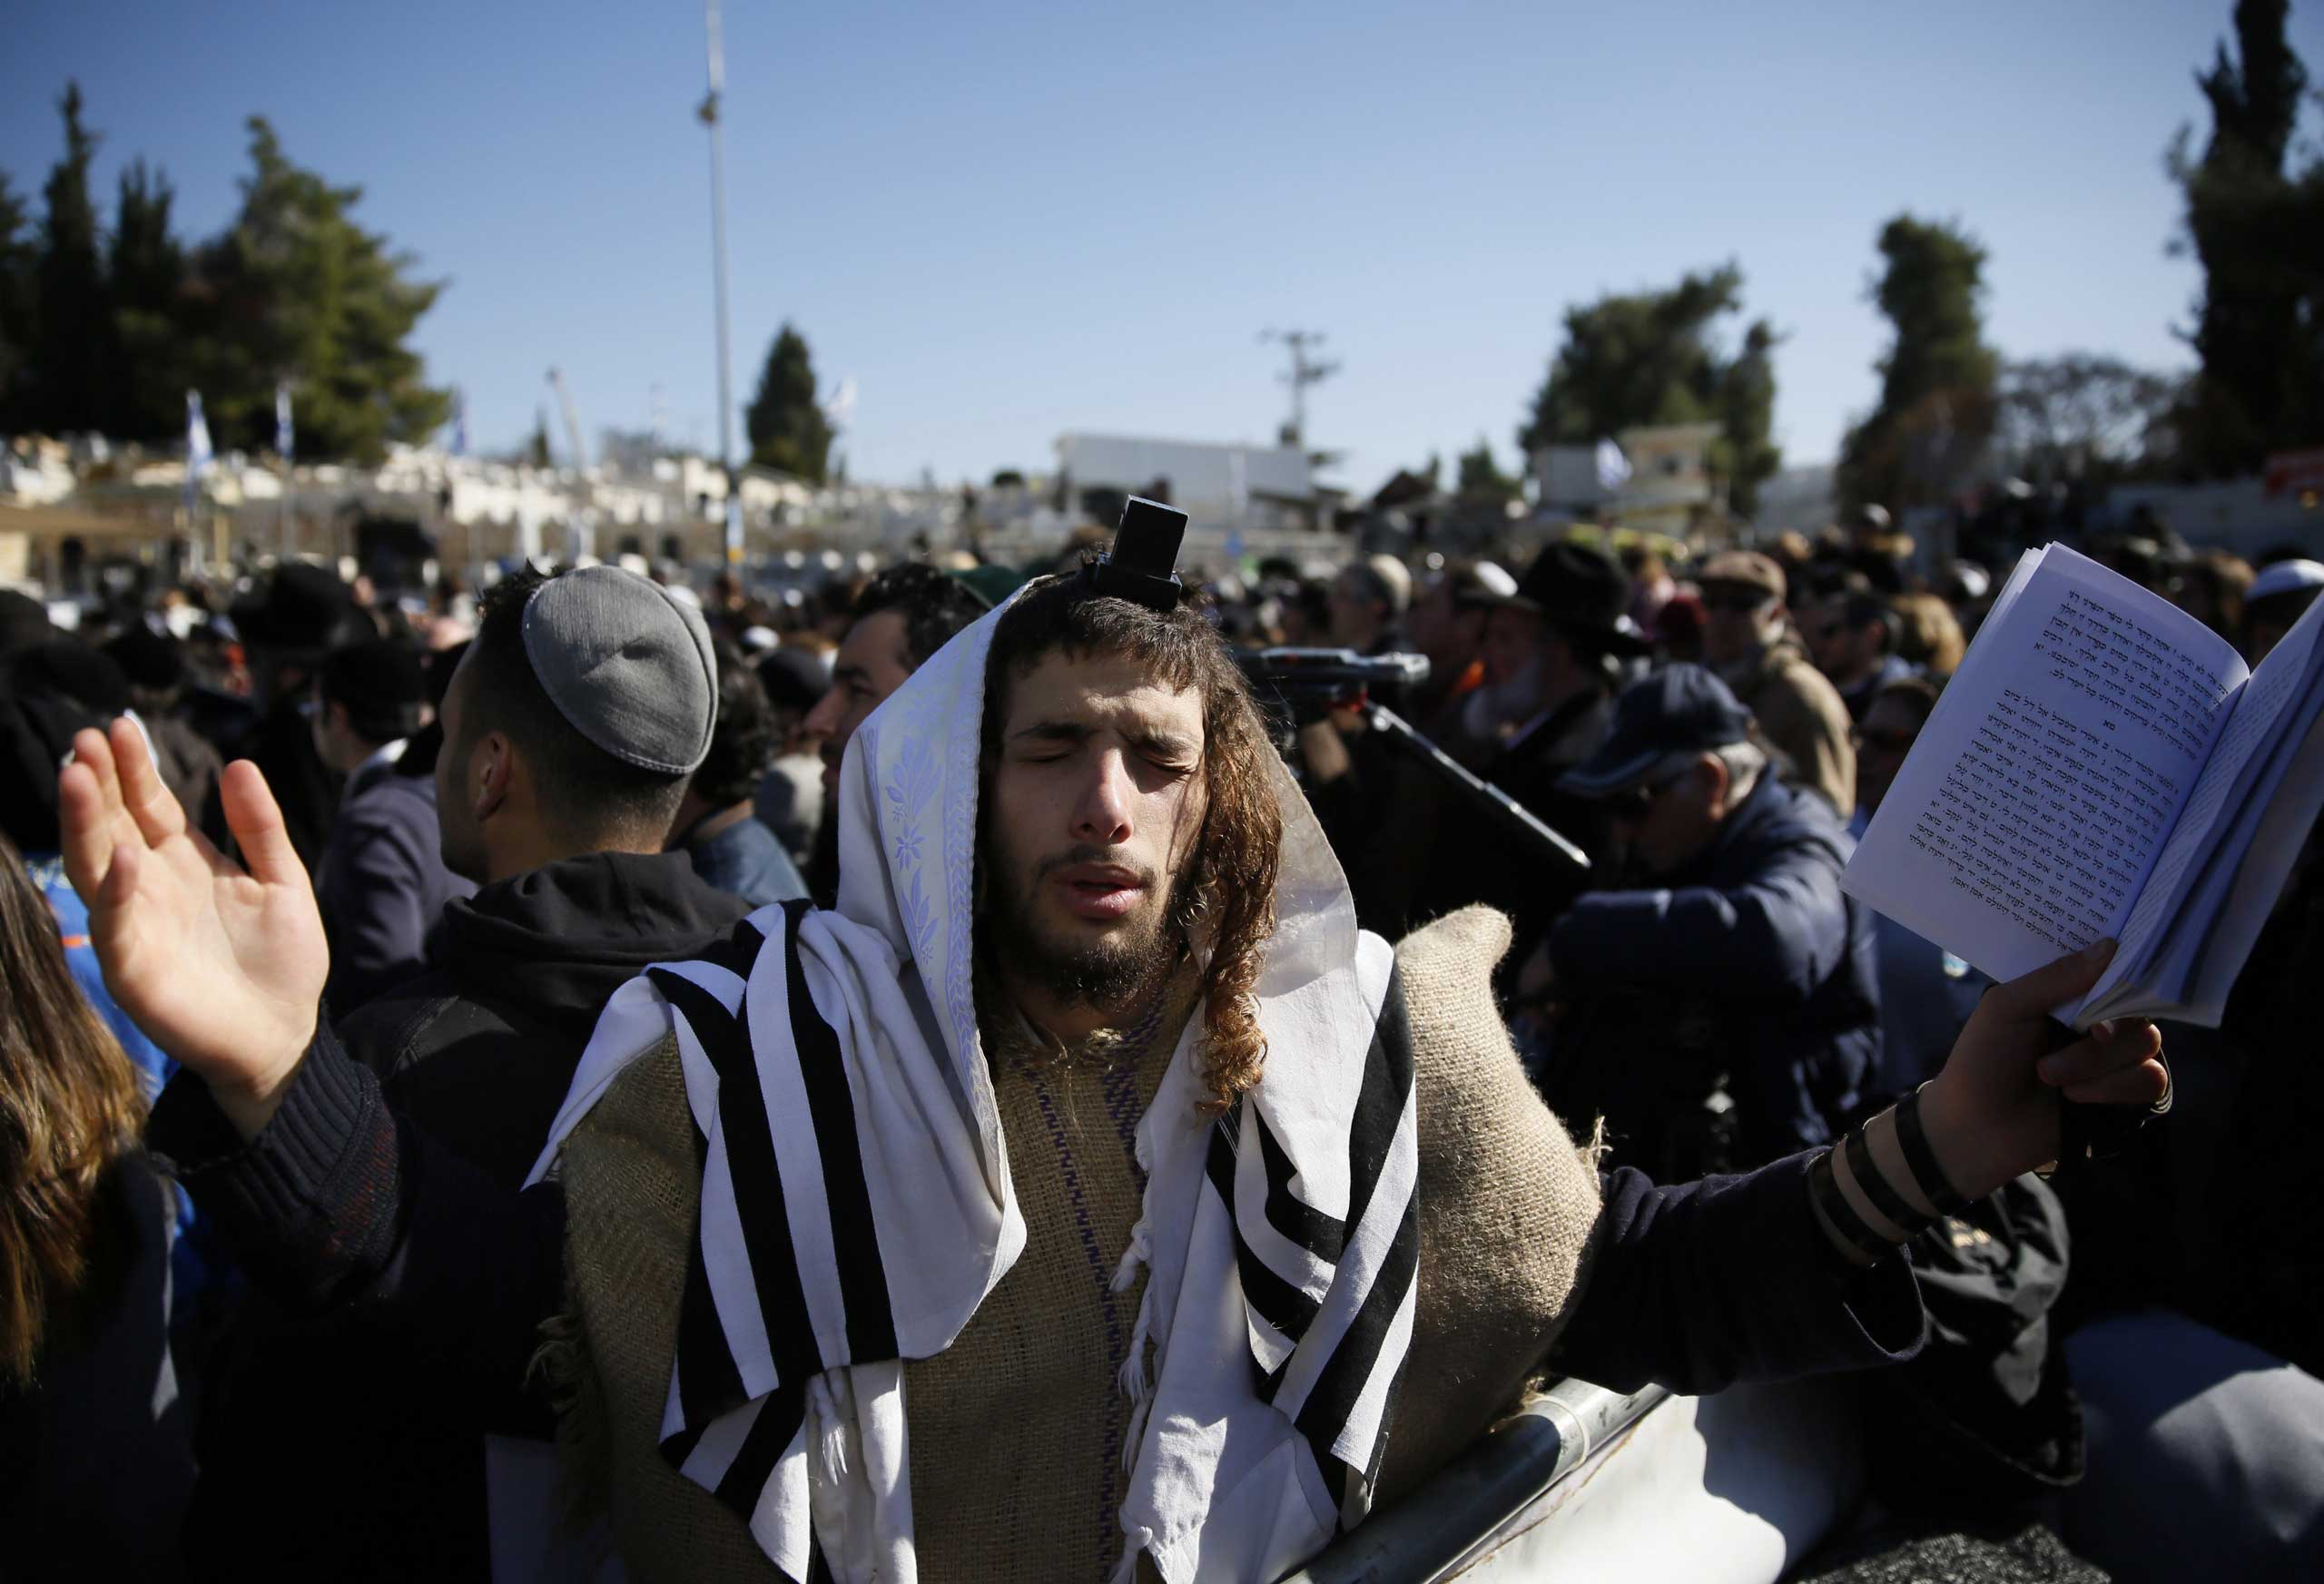 An ultra-Orthodox man prays at the funeral of four Jews, who were killed in a terrorist attack on a kosher supermarket in Paris last week, at a cemetery in Jerusalem on Jan. 13, 2015.